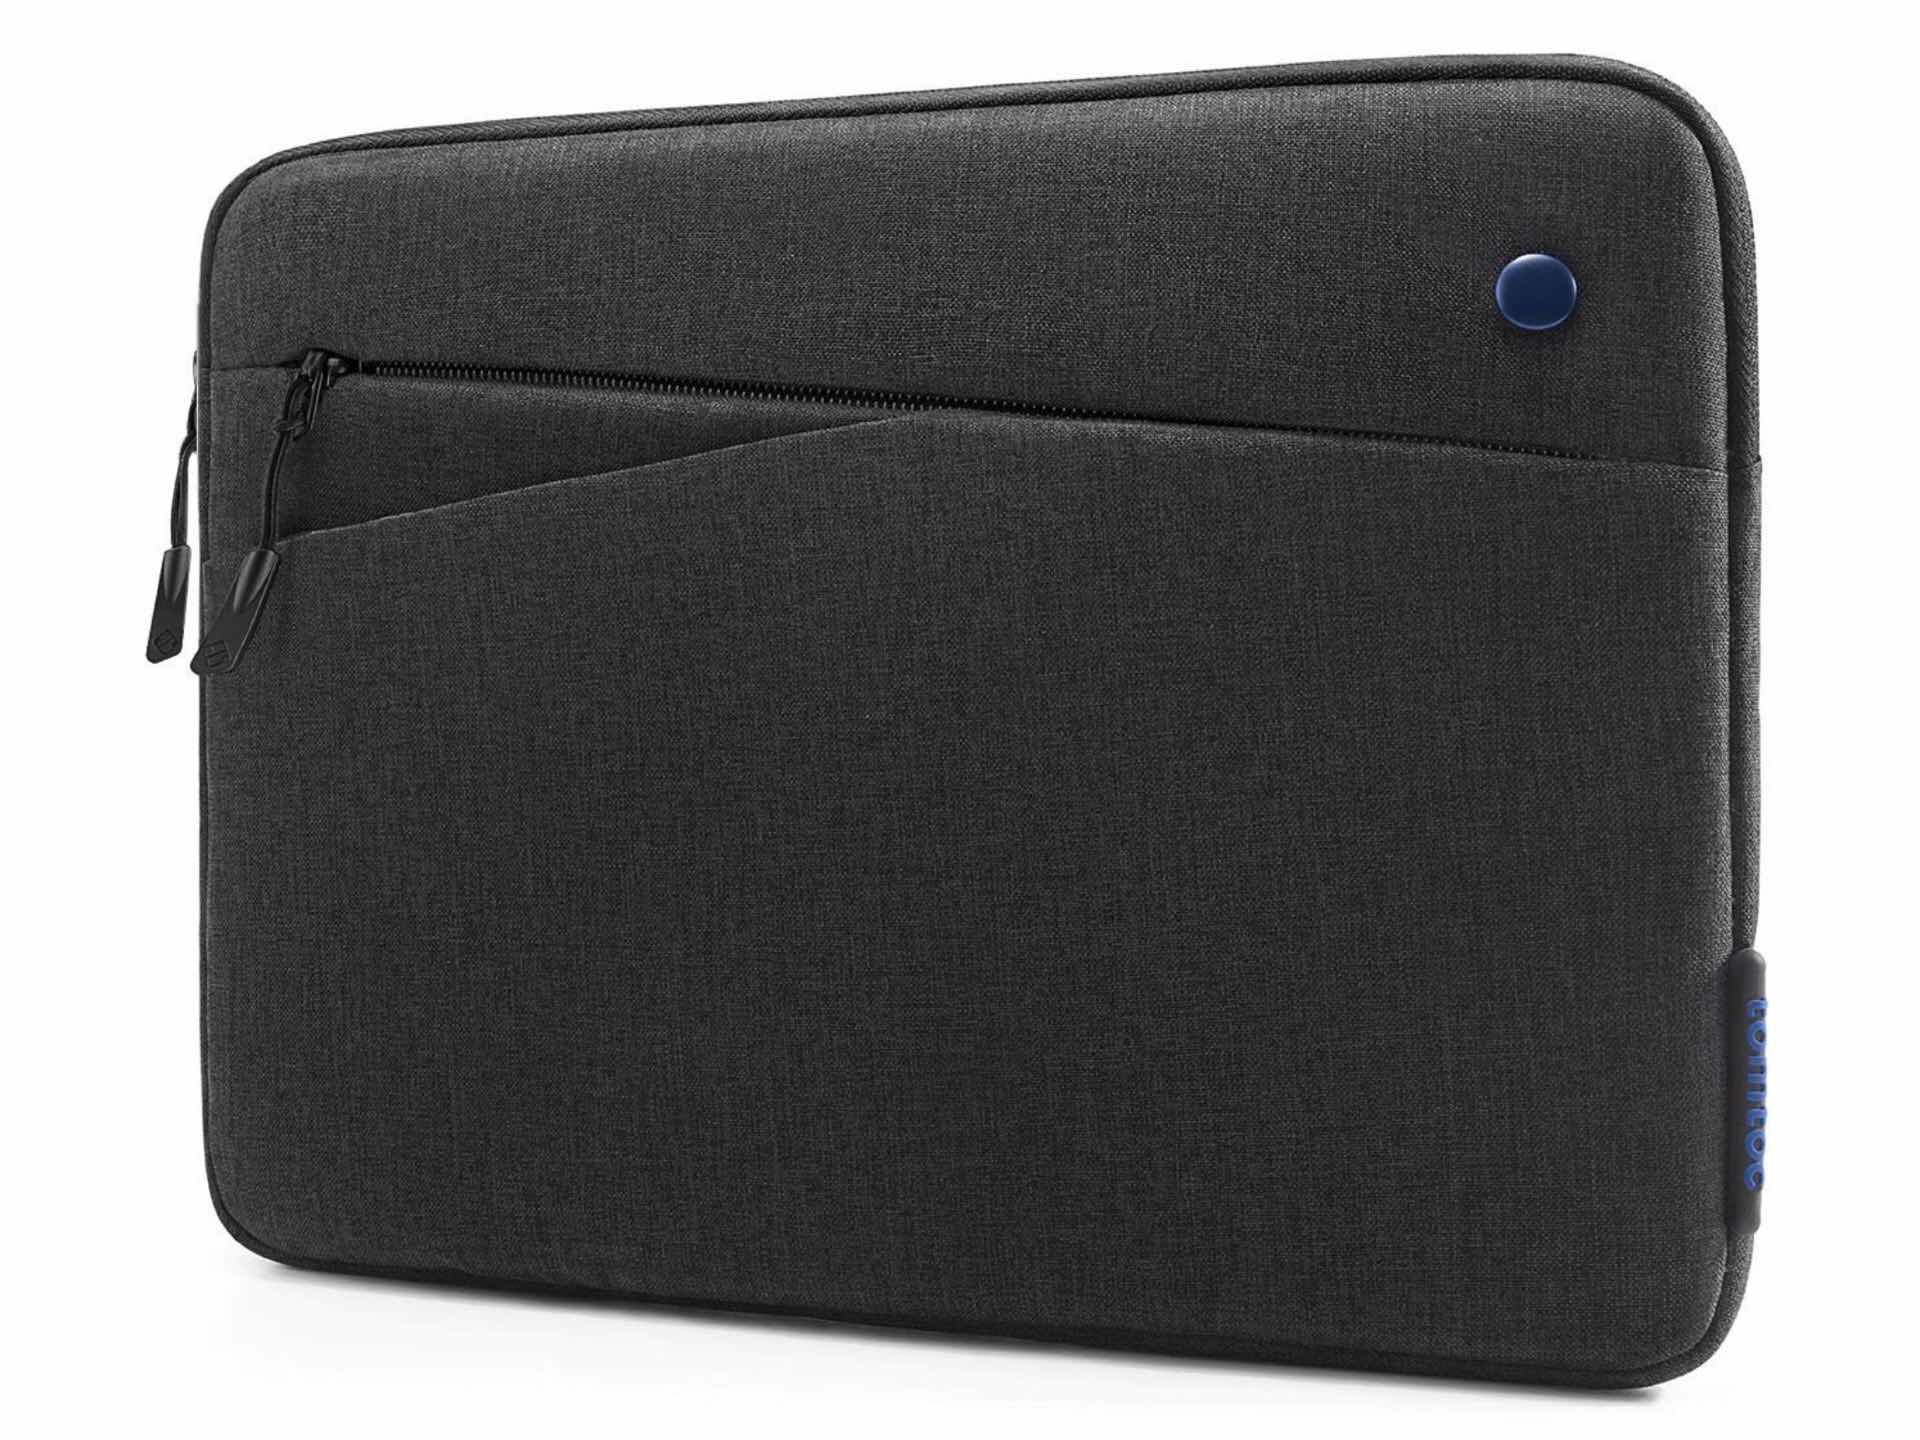 tomtoc-11-inch-tablet-sleeve-bag-for-ipad-pro